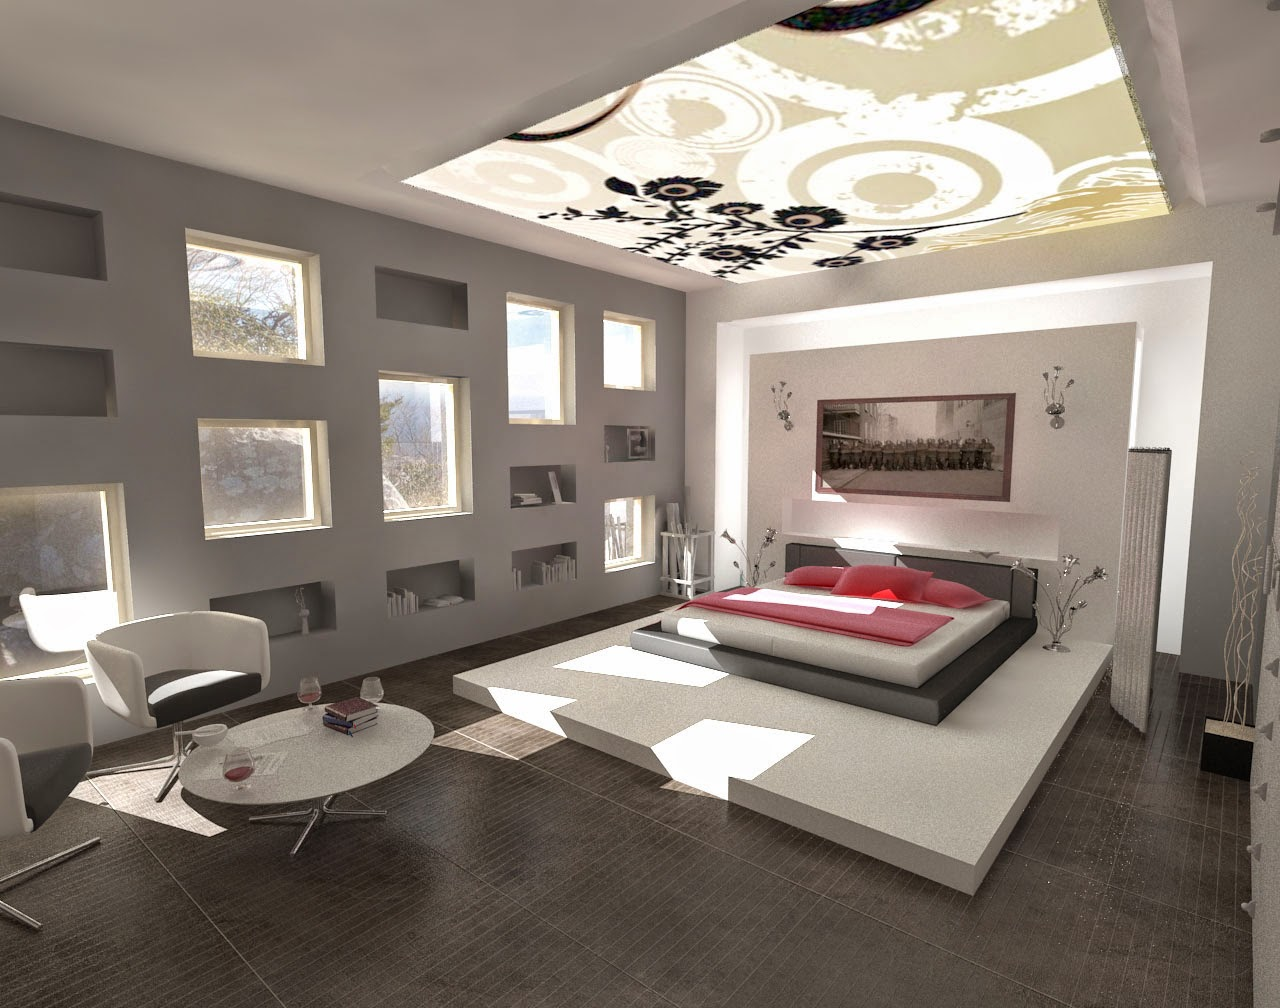 chambre mobilier design moderne